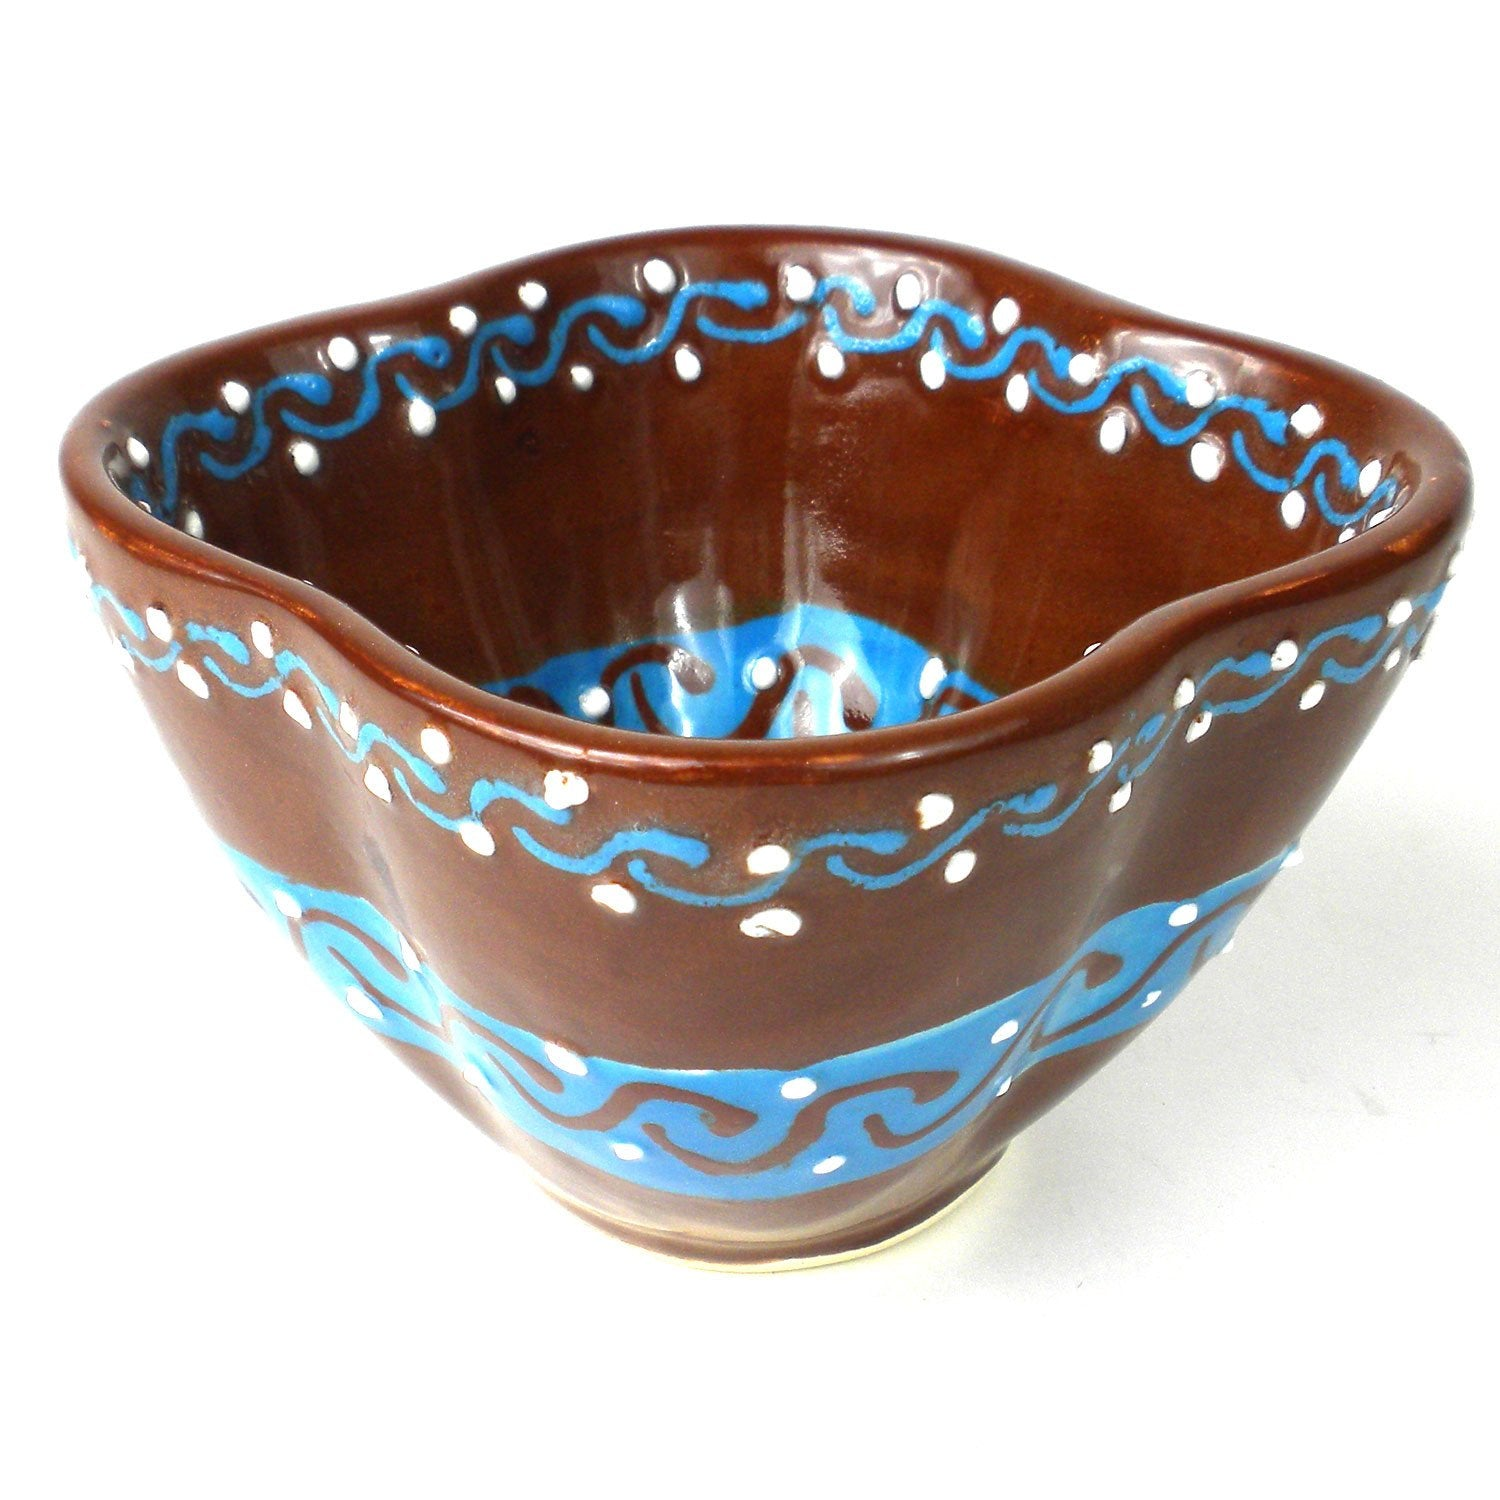 Encantada Handmade Pottery Dip Bowl, Chocolate